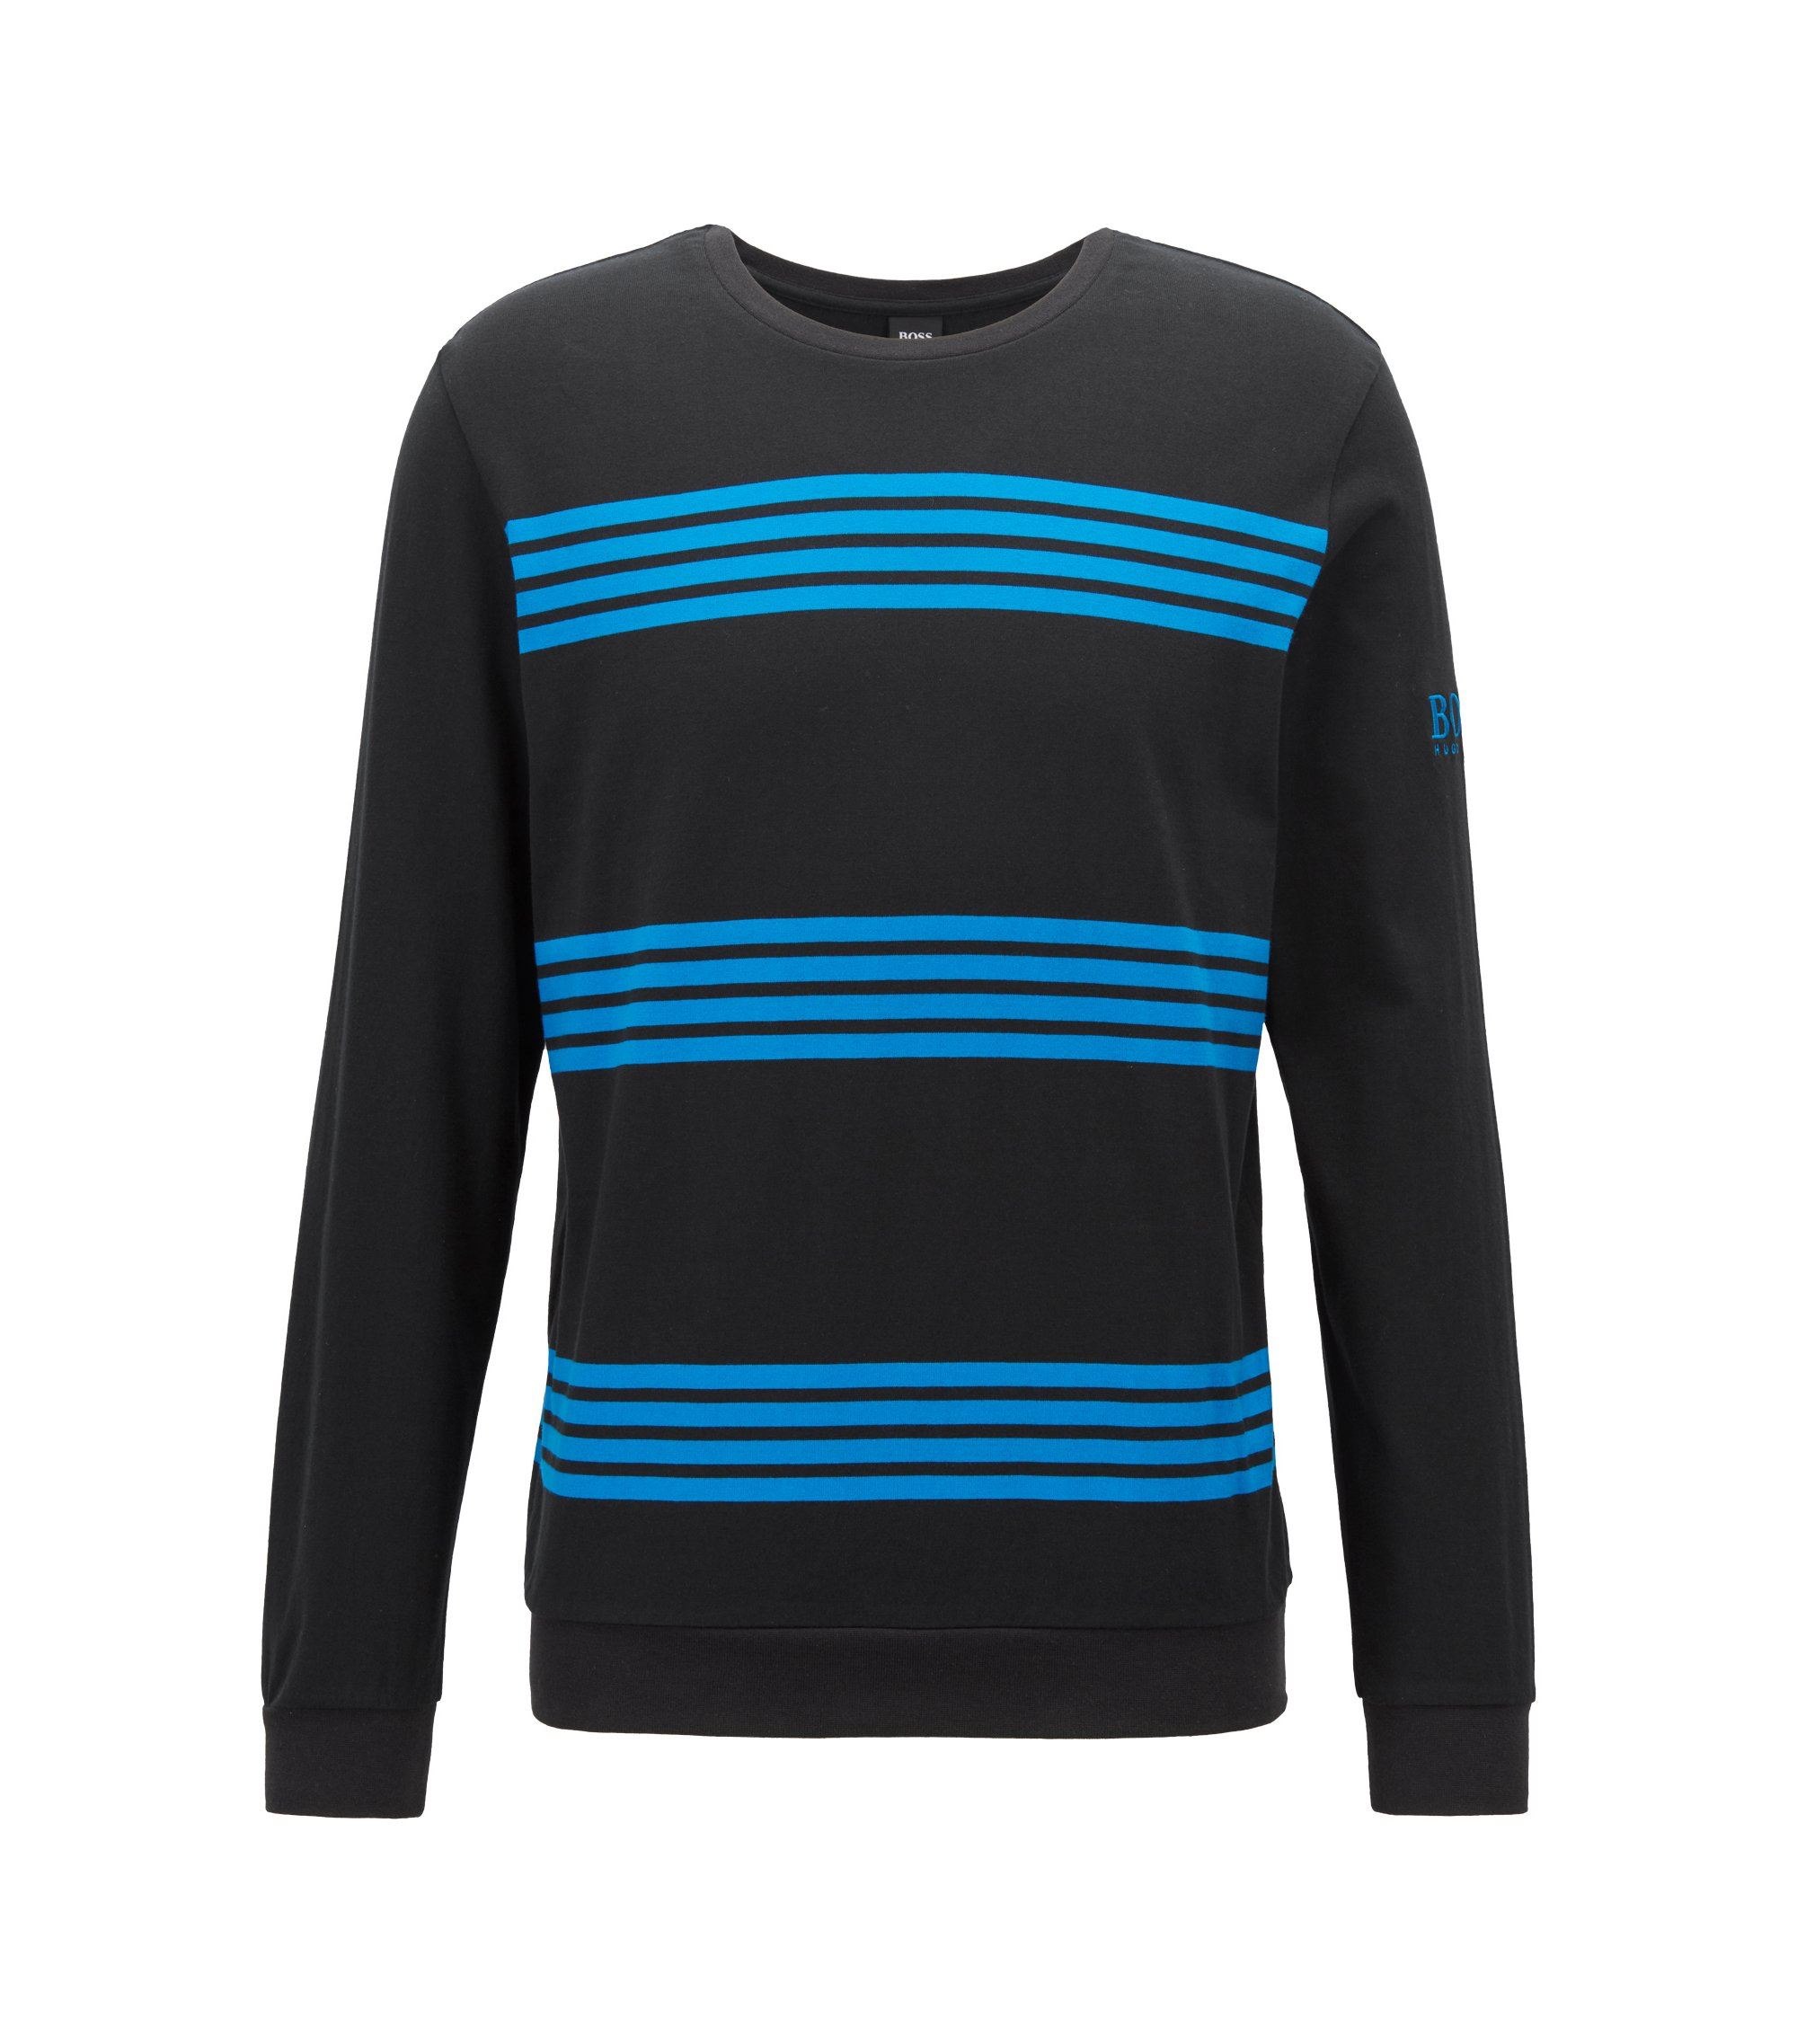 Striped jersey sweatshirt with logo embroidery, Black